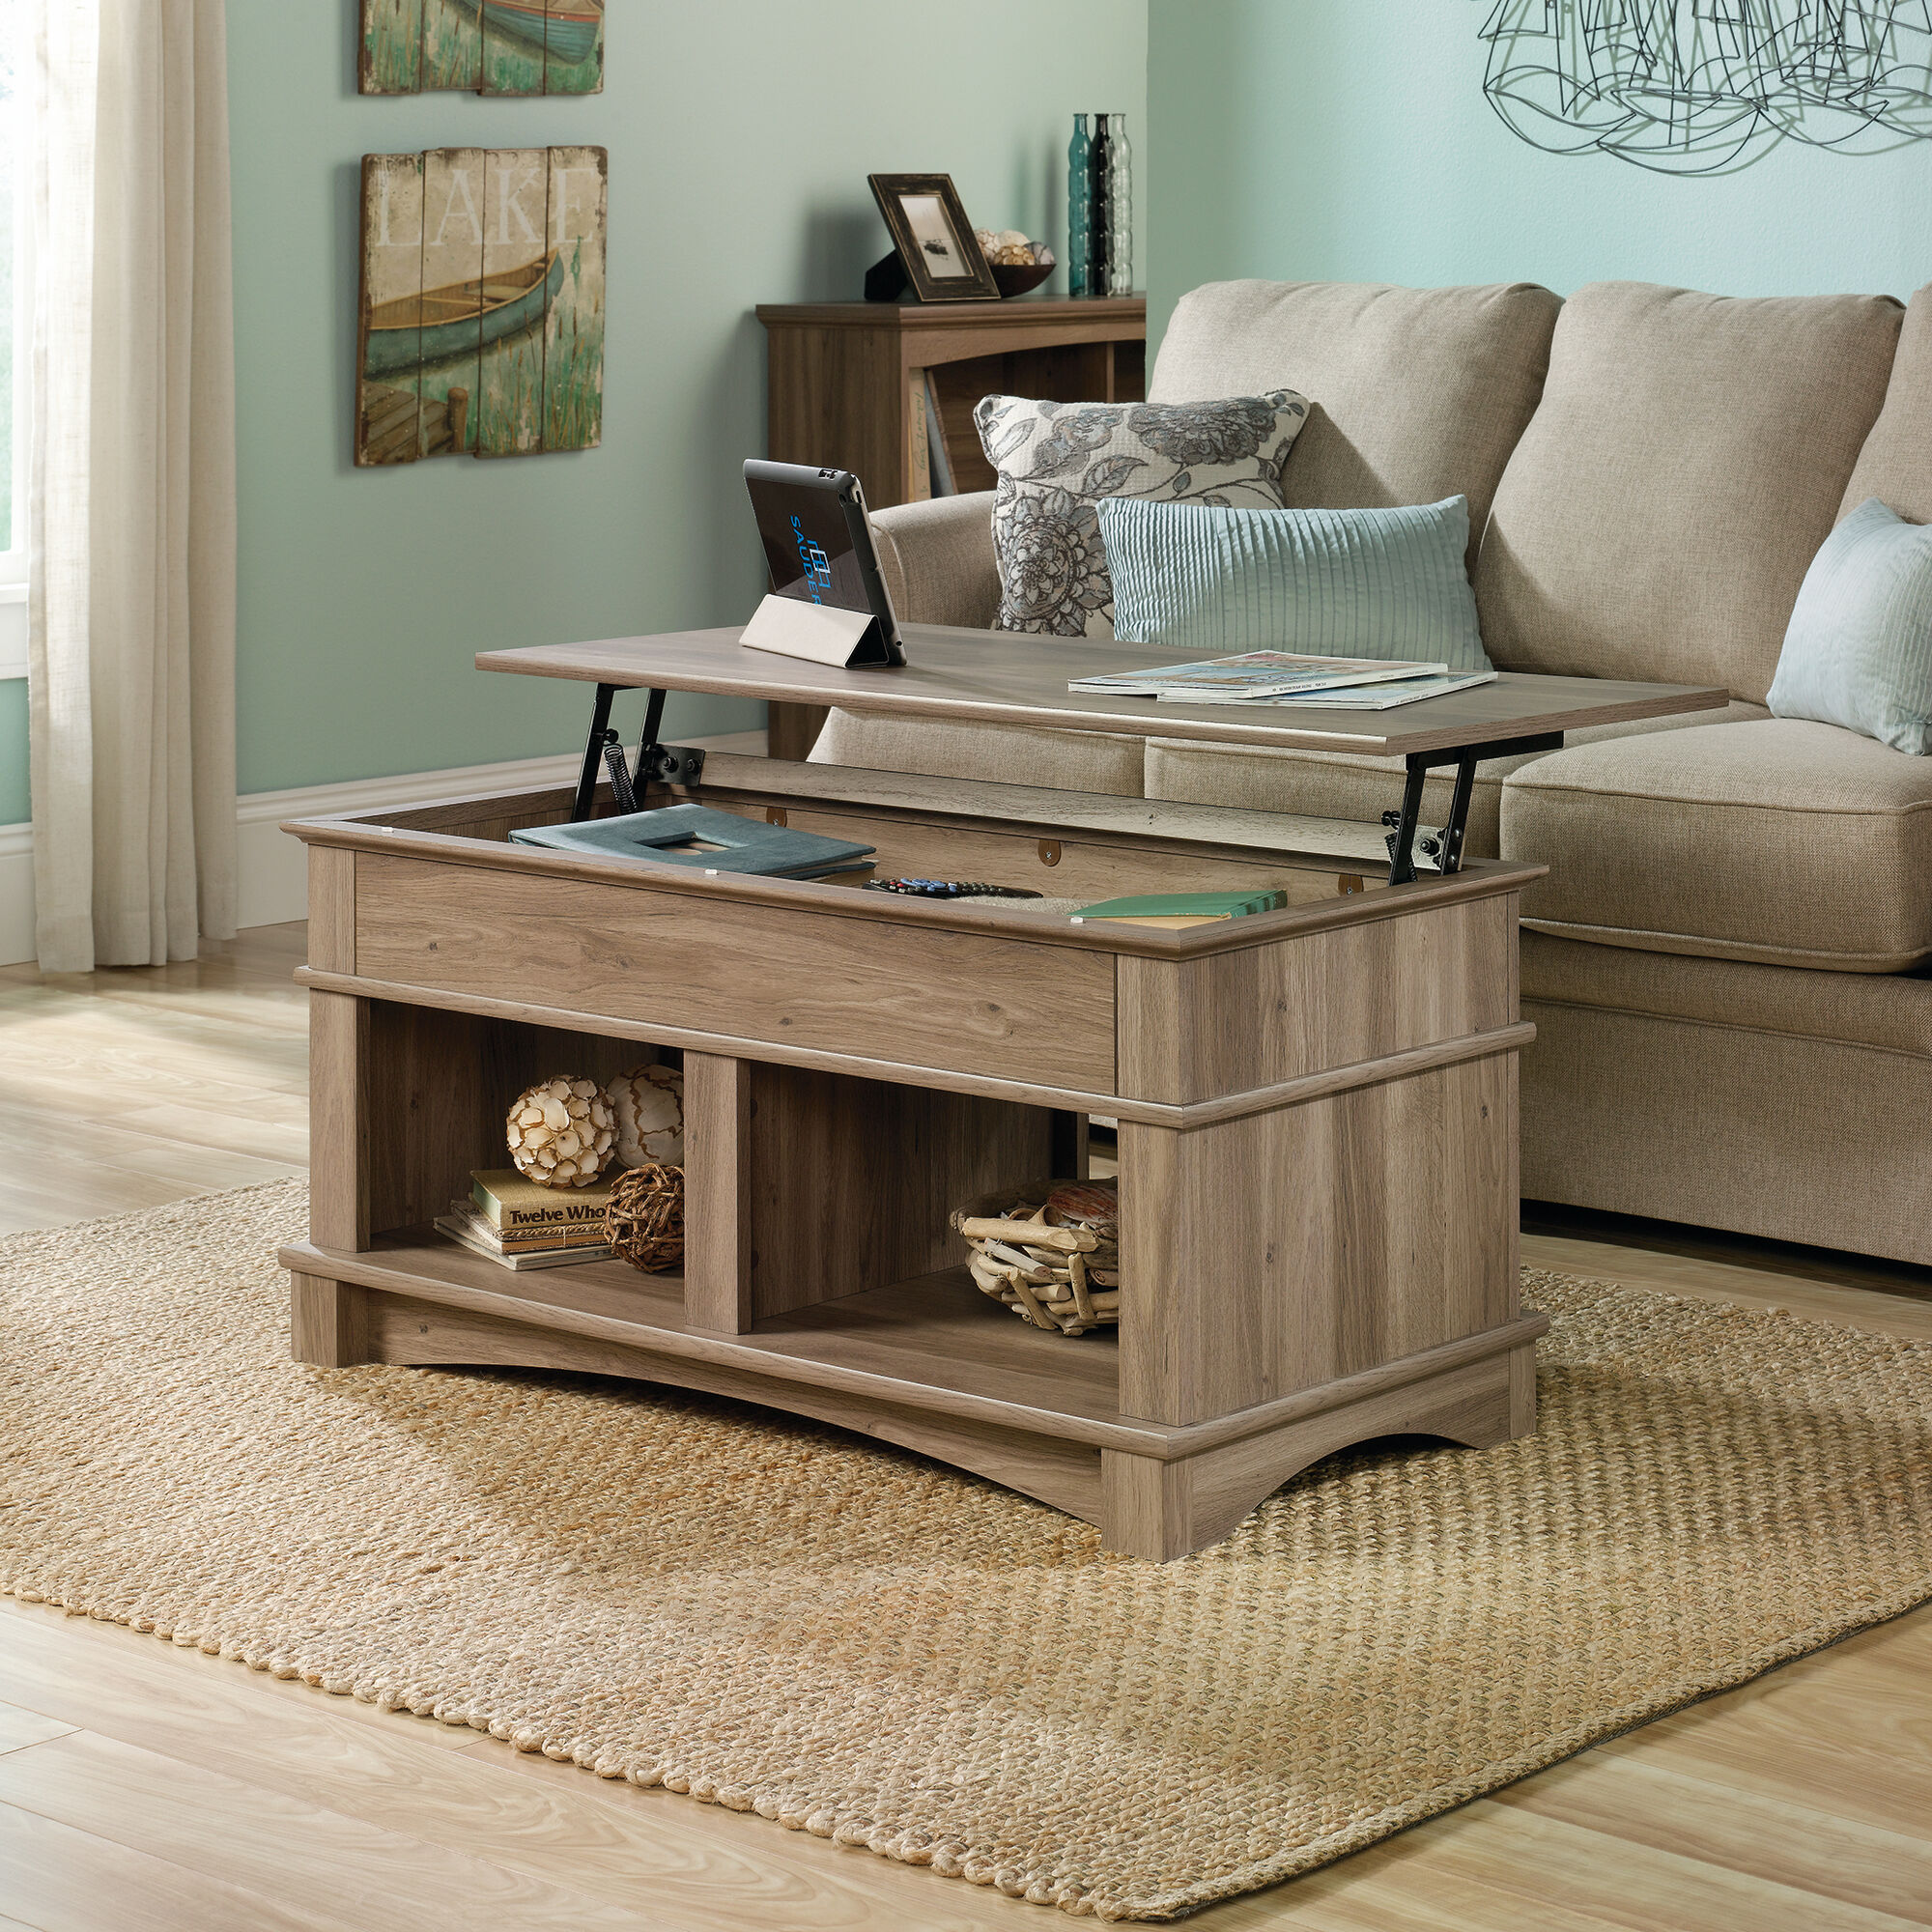 Rectangular lift top contemporary coffee table in